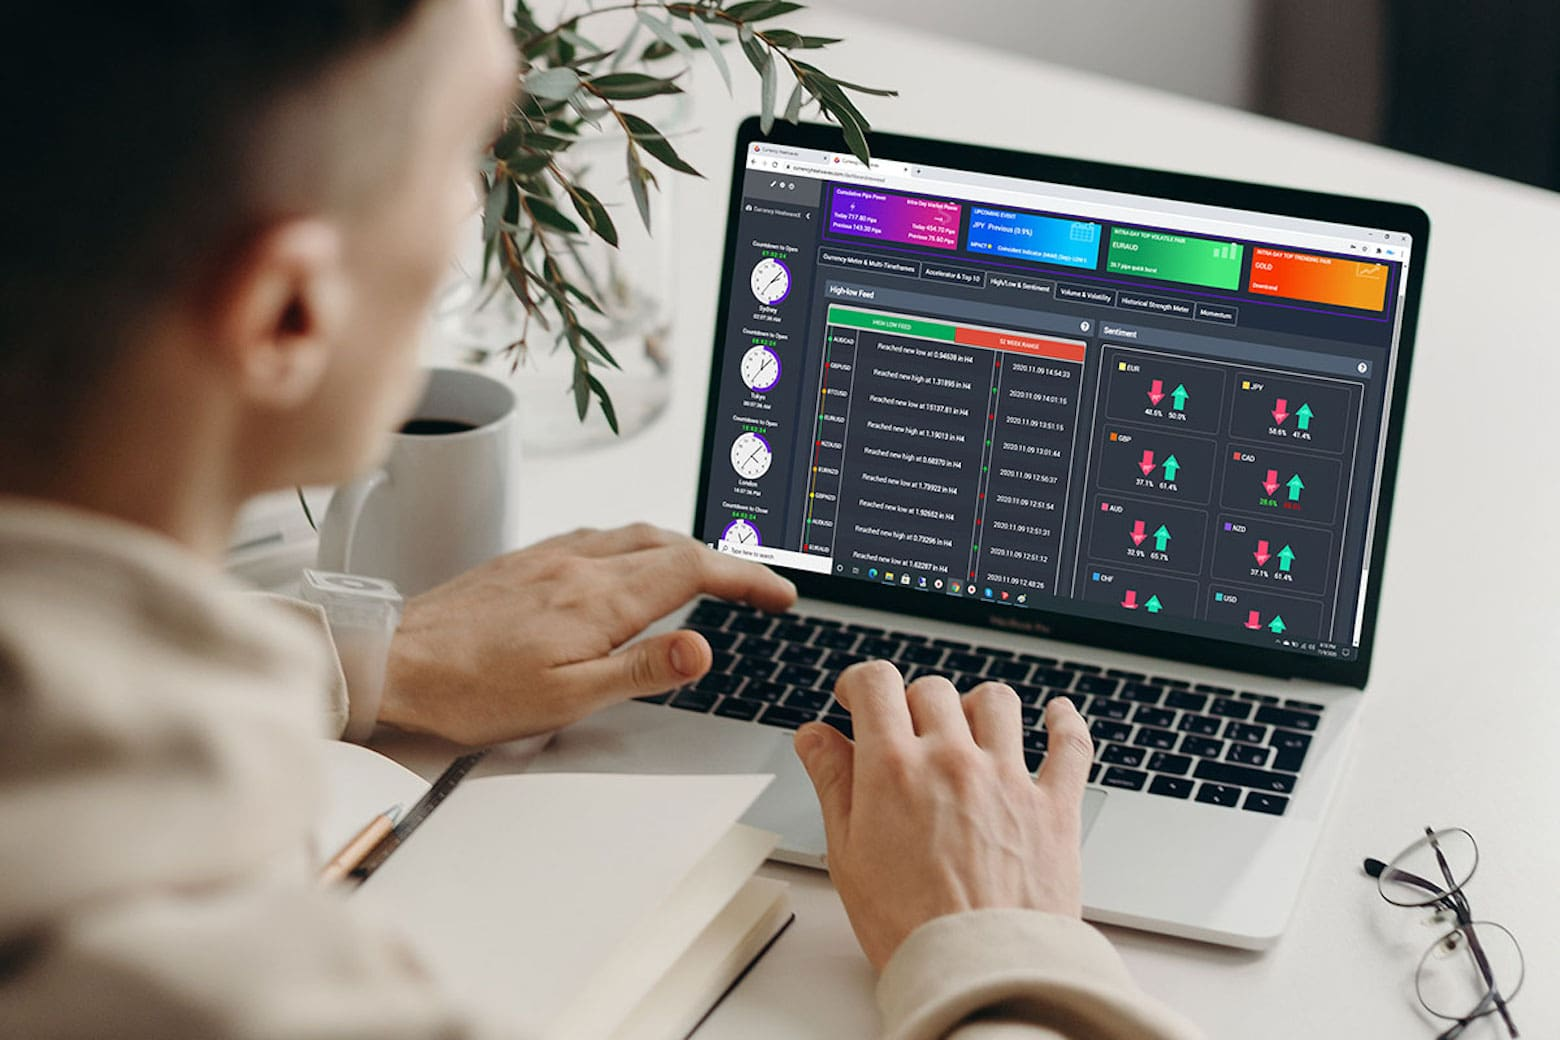 Invest intelligently with this real-time financial tool